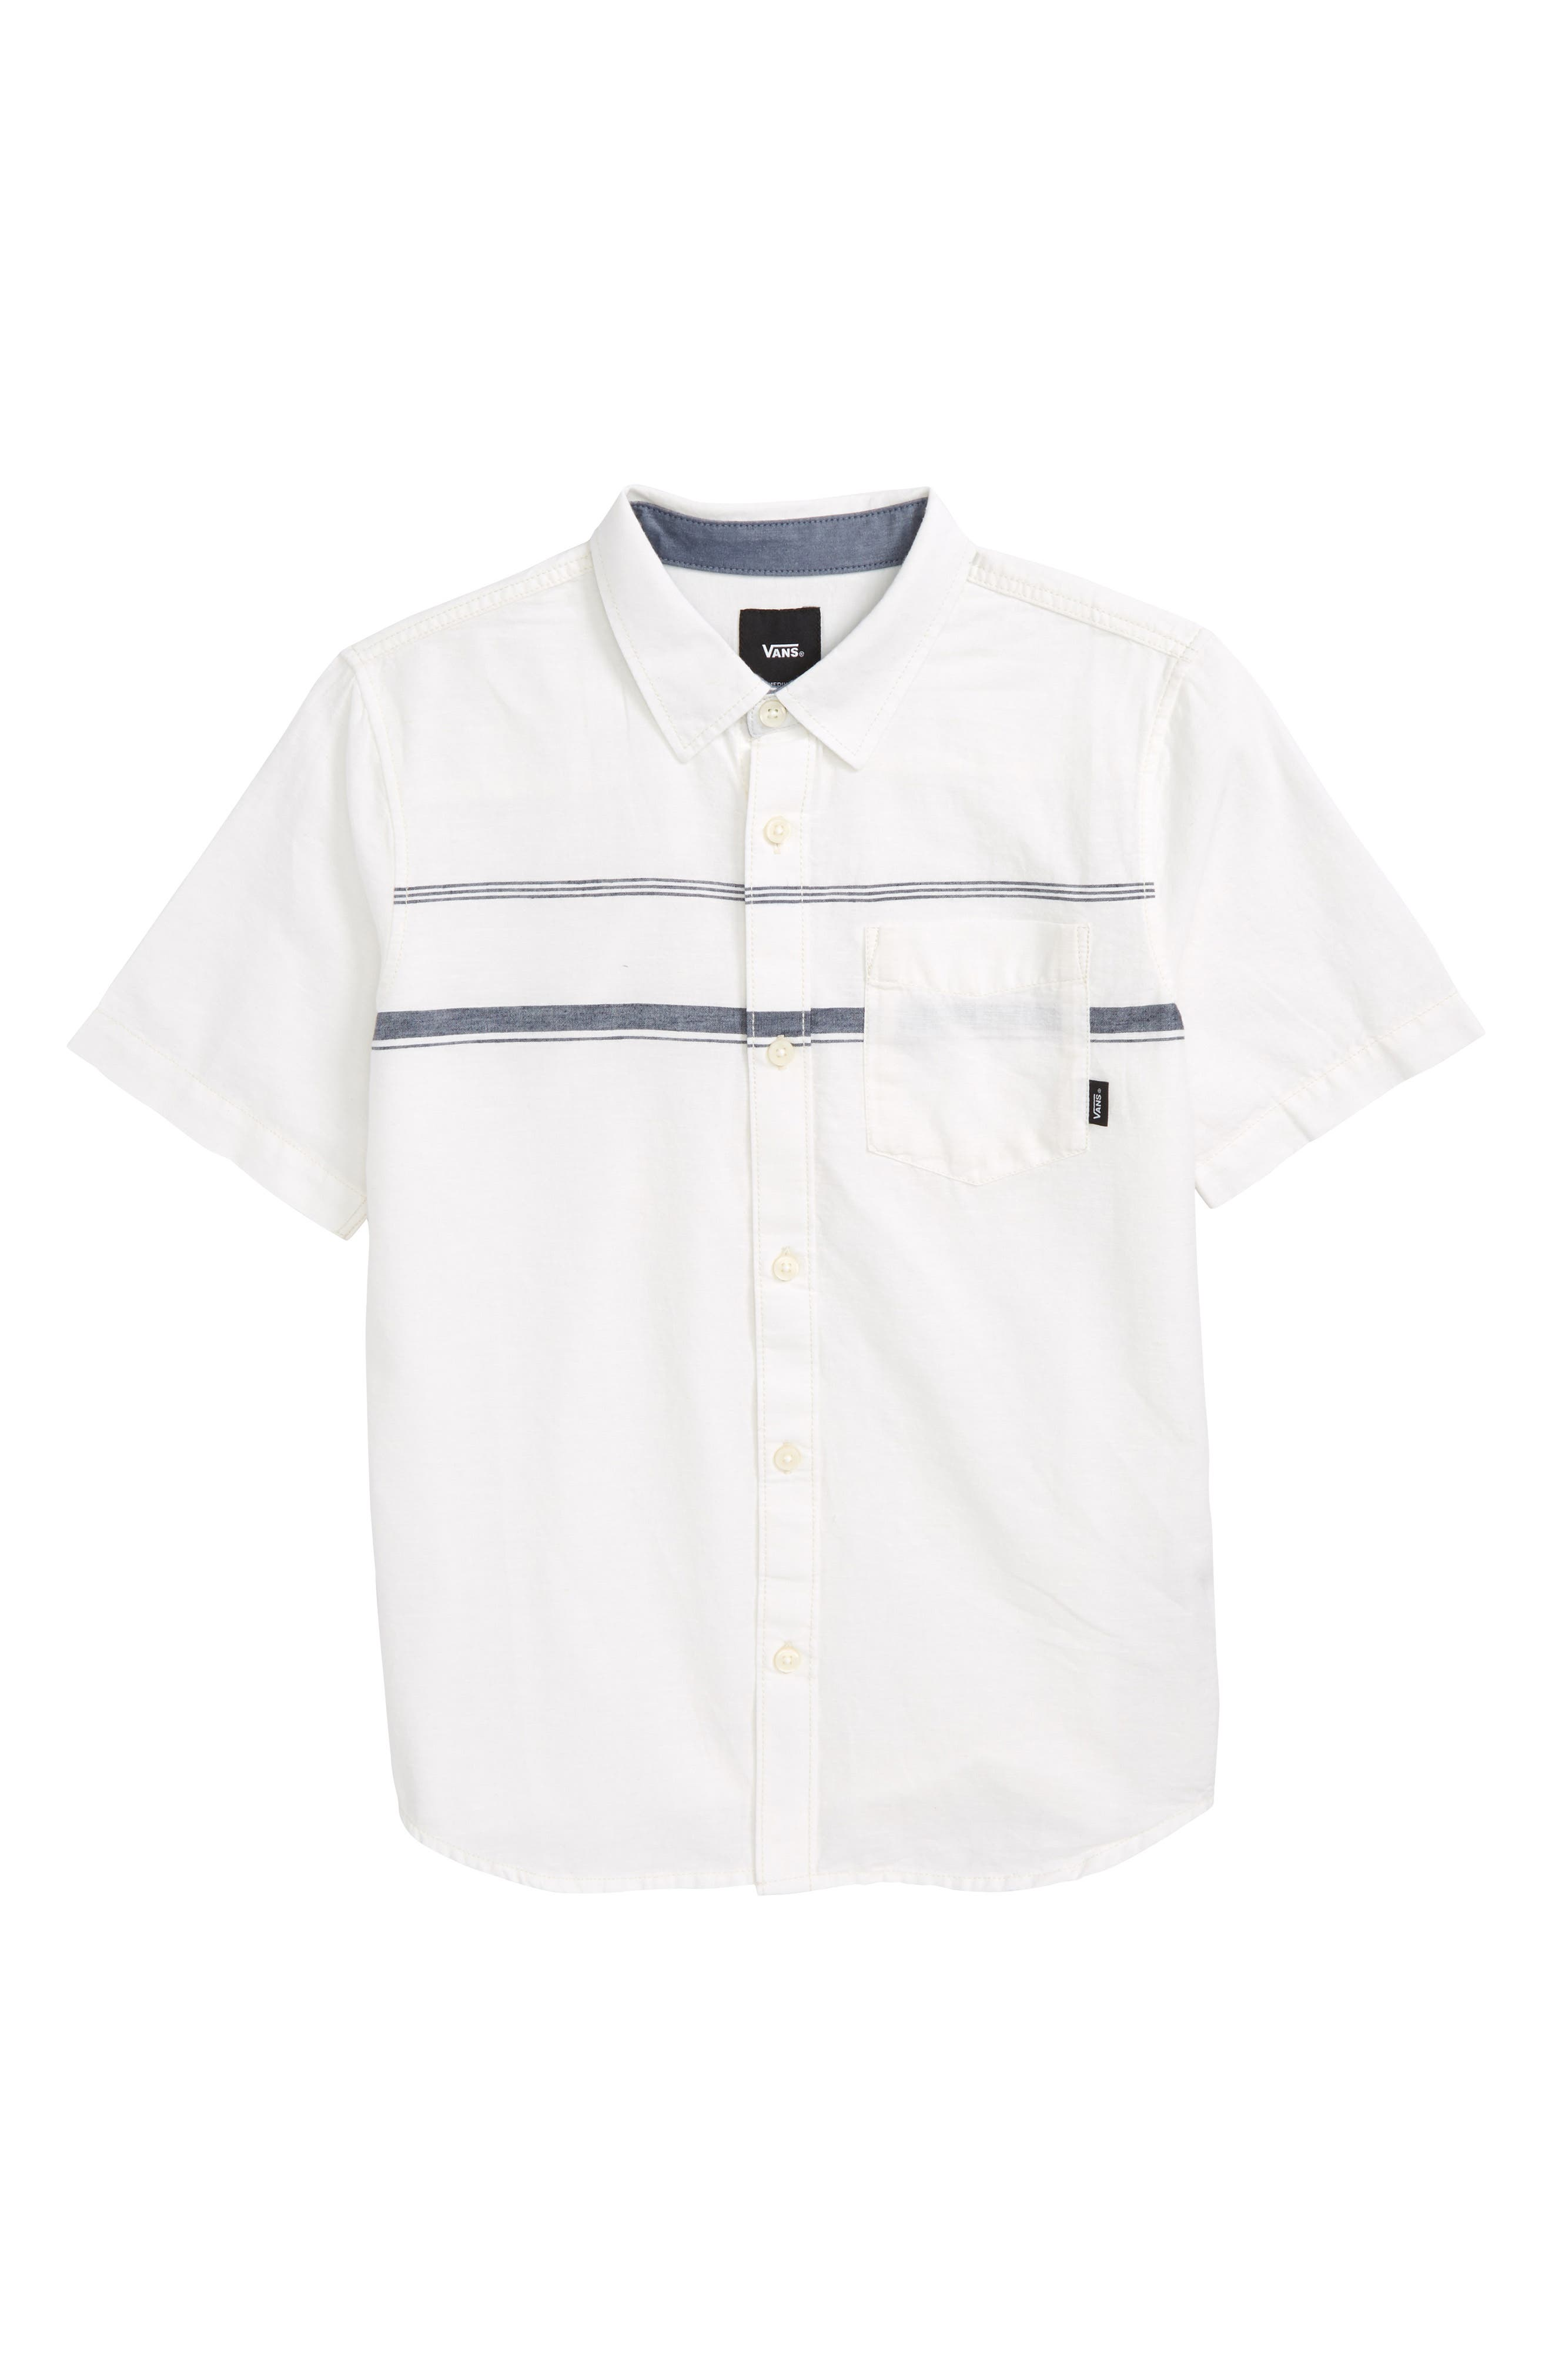 Alternate Image 1 Selected - Vans Thurber Boys Woven Shirt (Big Boys)